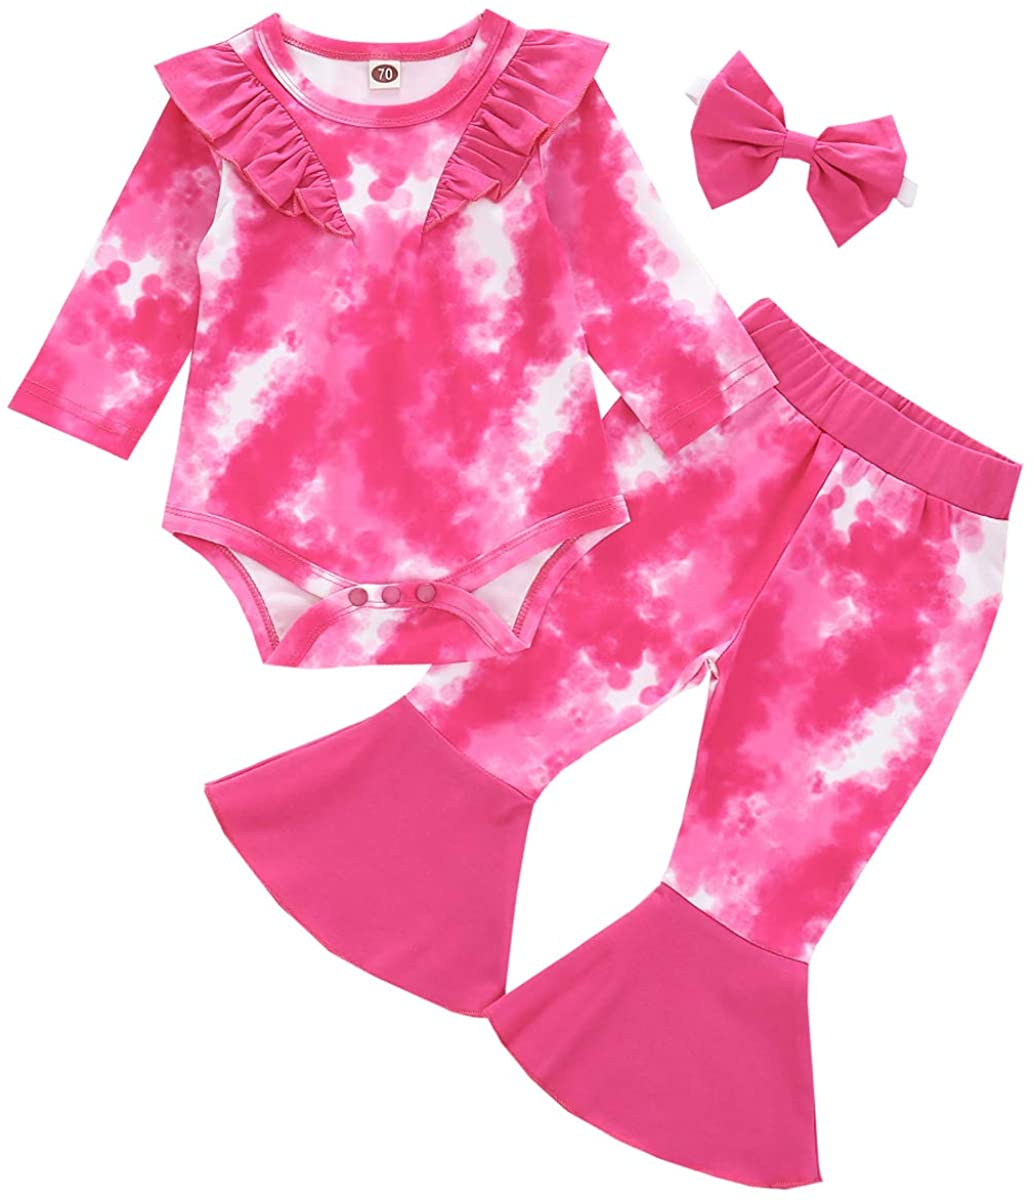 Coralup Baby Girls Tie Dye 3PCS Outfits Ruffle Bell-Bottom Romper and Pants Set with Headband 0-24 Months